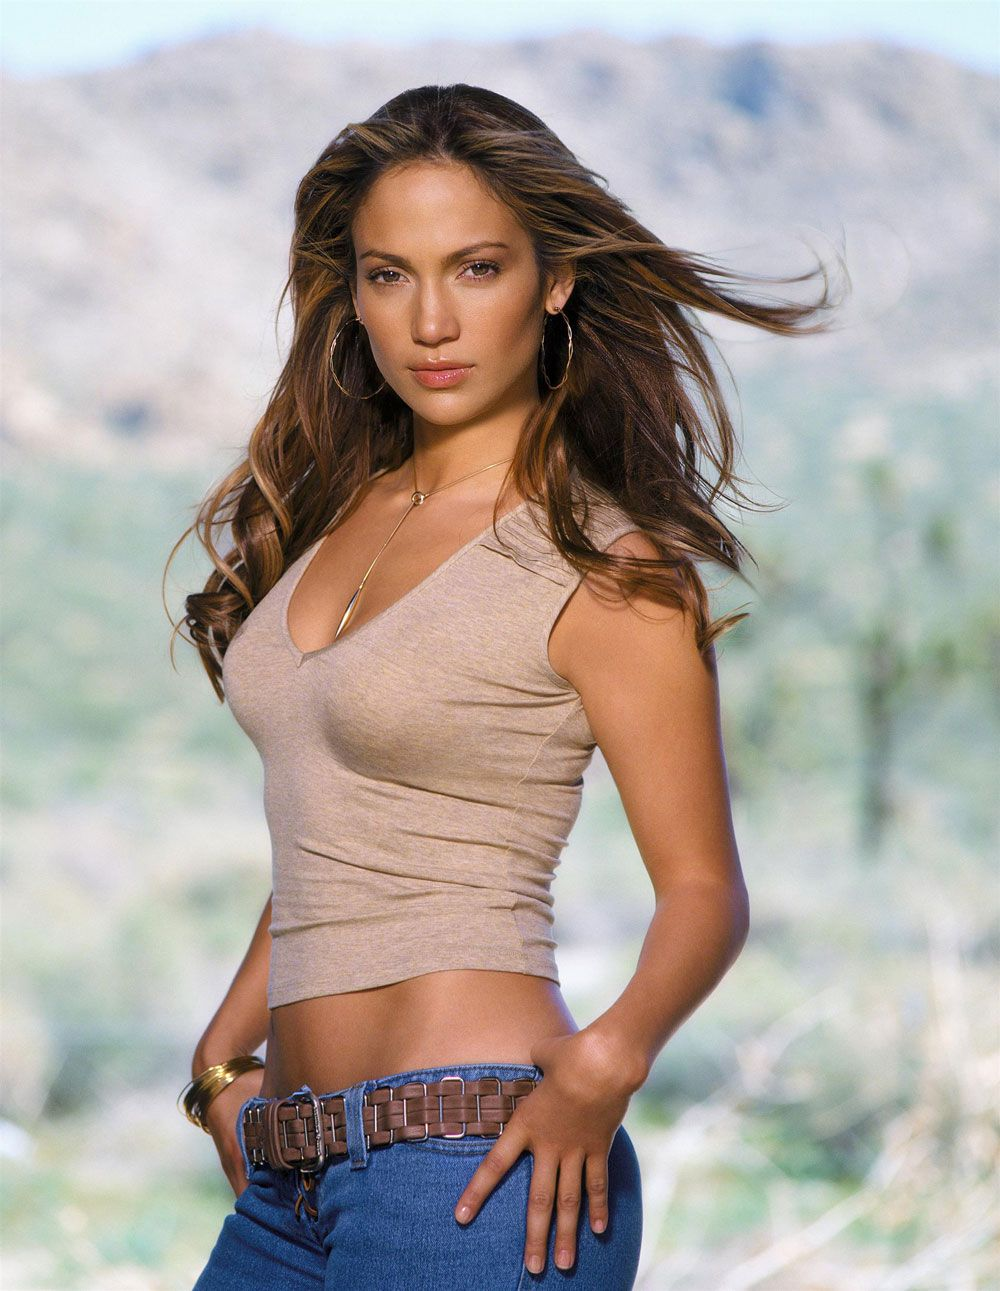 Above told Jennifer lopez hot body you tell